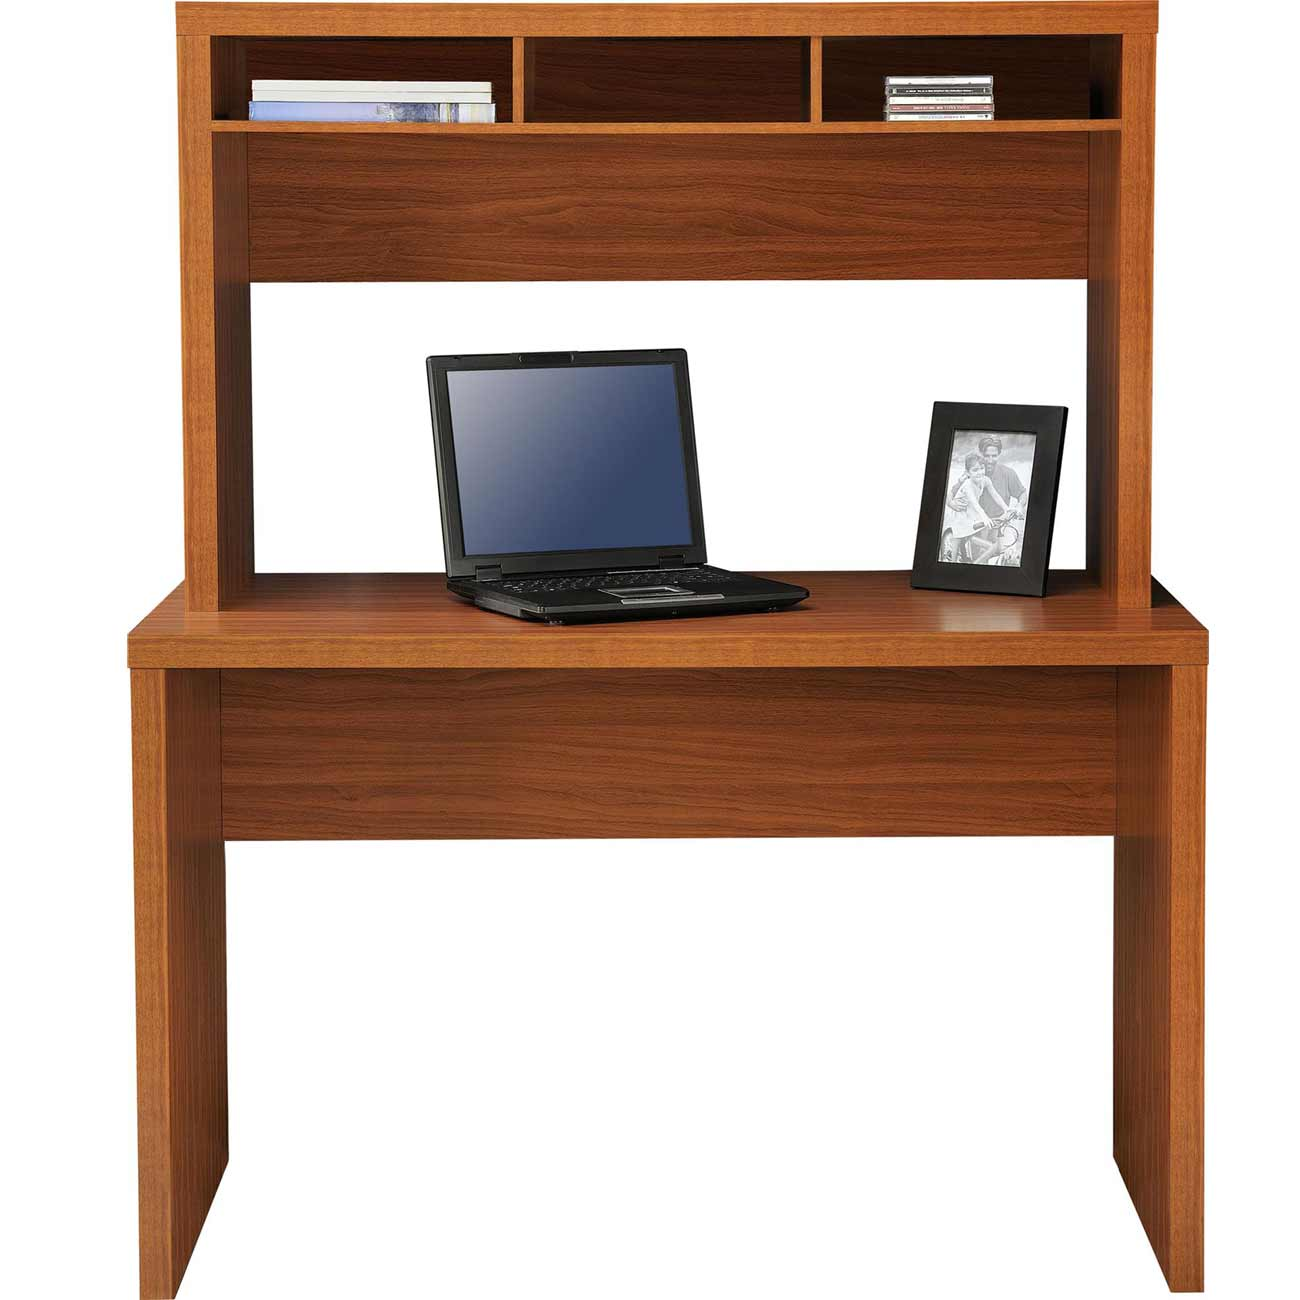 Wooden Computer Desk ~ Modular home office desk systems